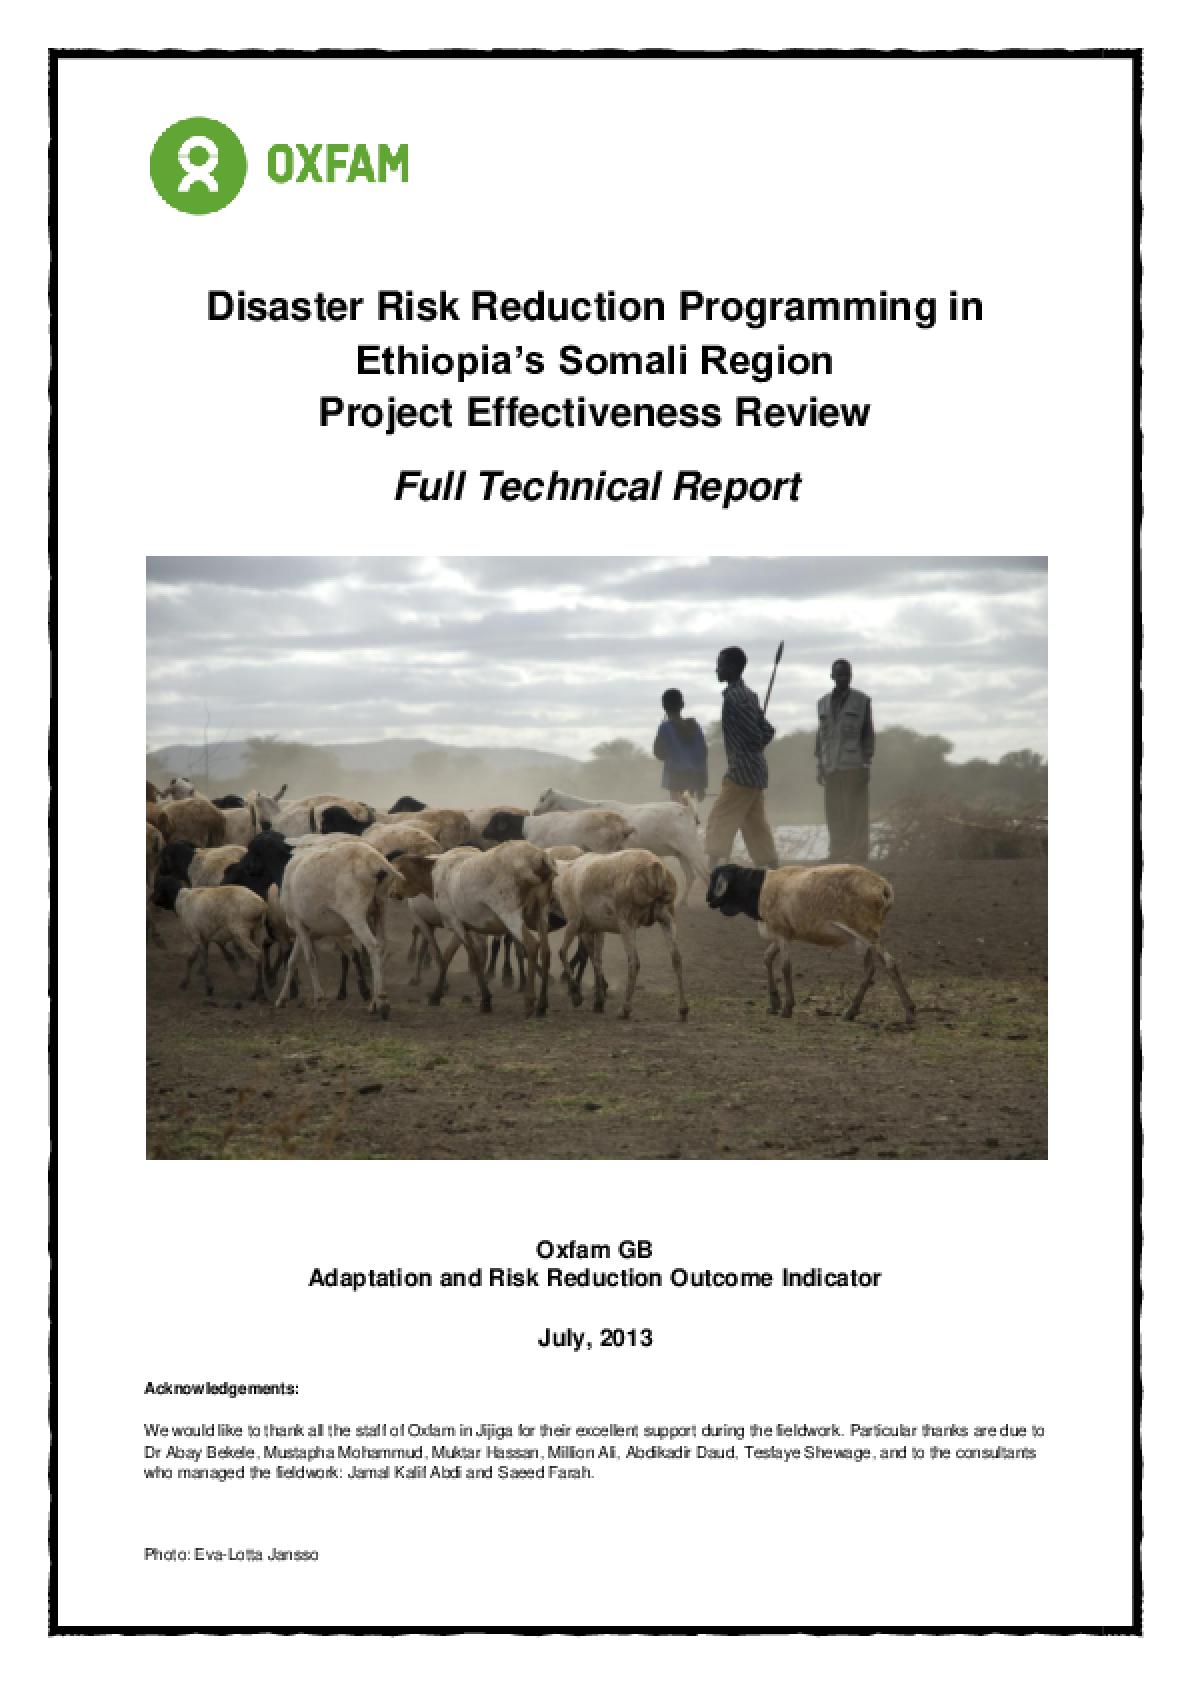 Effectiveness Review: Disaster Risk Reduction Programming in Ethiopia's Somali Region